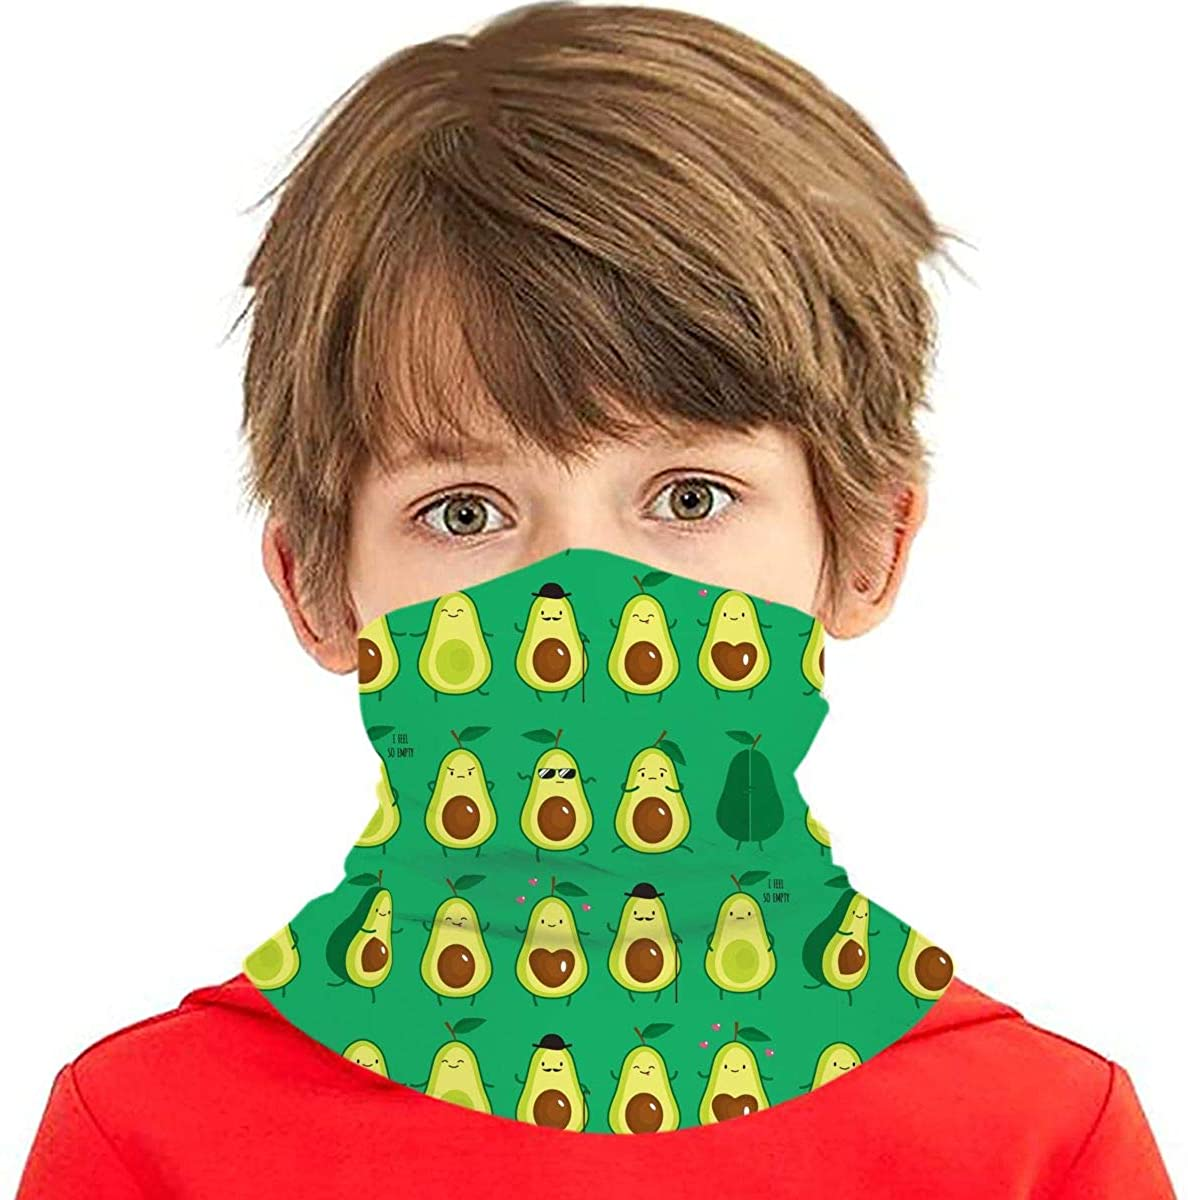 Dujiea Kids Bandanas Face Mask, Cute Cartoon Avocado Dust Sun UV Protection Neck Gaiter Multifunctional Balaclava Face Scarf Summer Tube Headband Lightweight for Boys Girls Outdoors